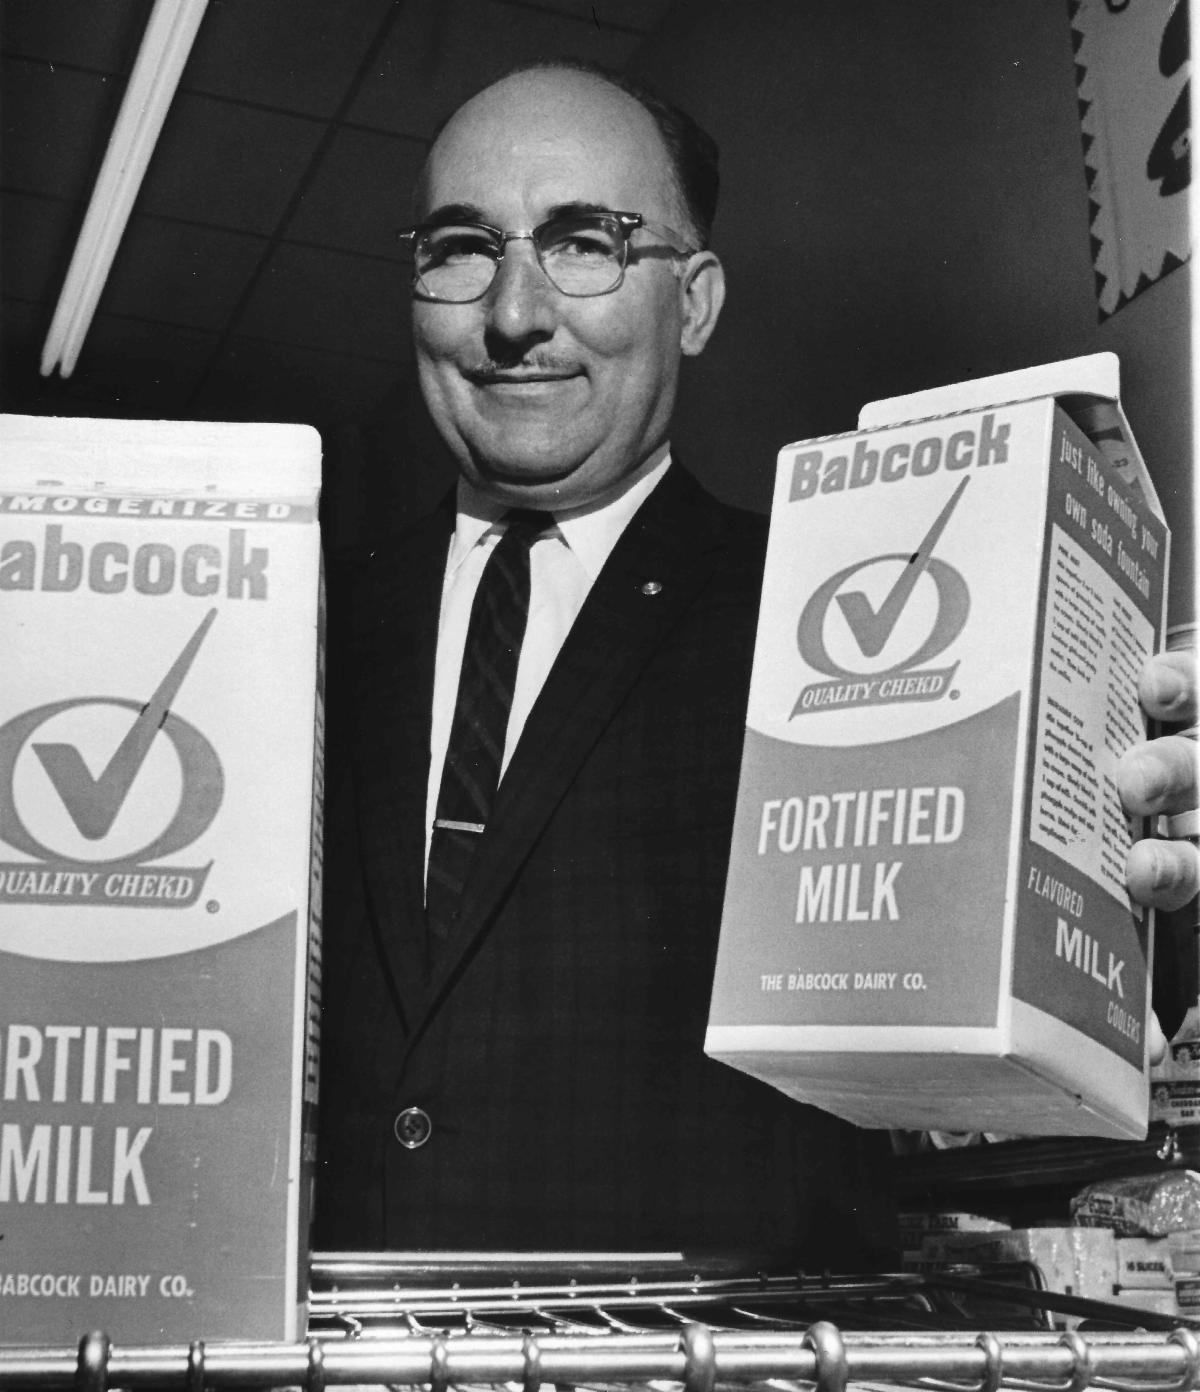 Bob Sautter with Babcock Dairy products